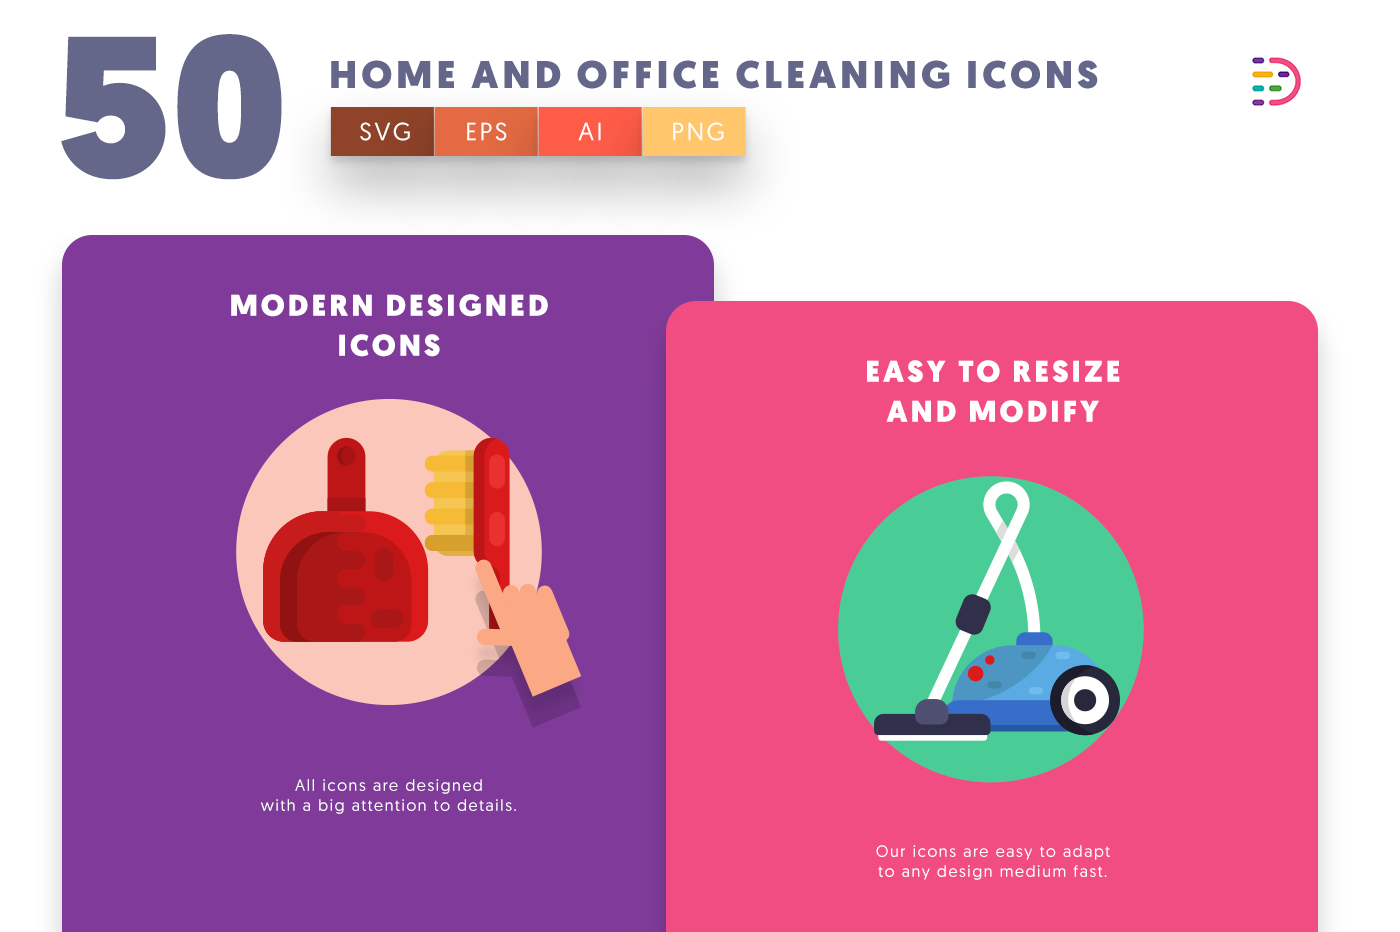 Home and Office Cleaning icons png/svg/eps